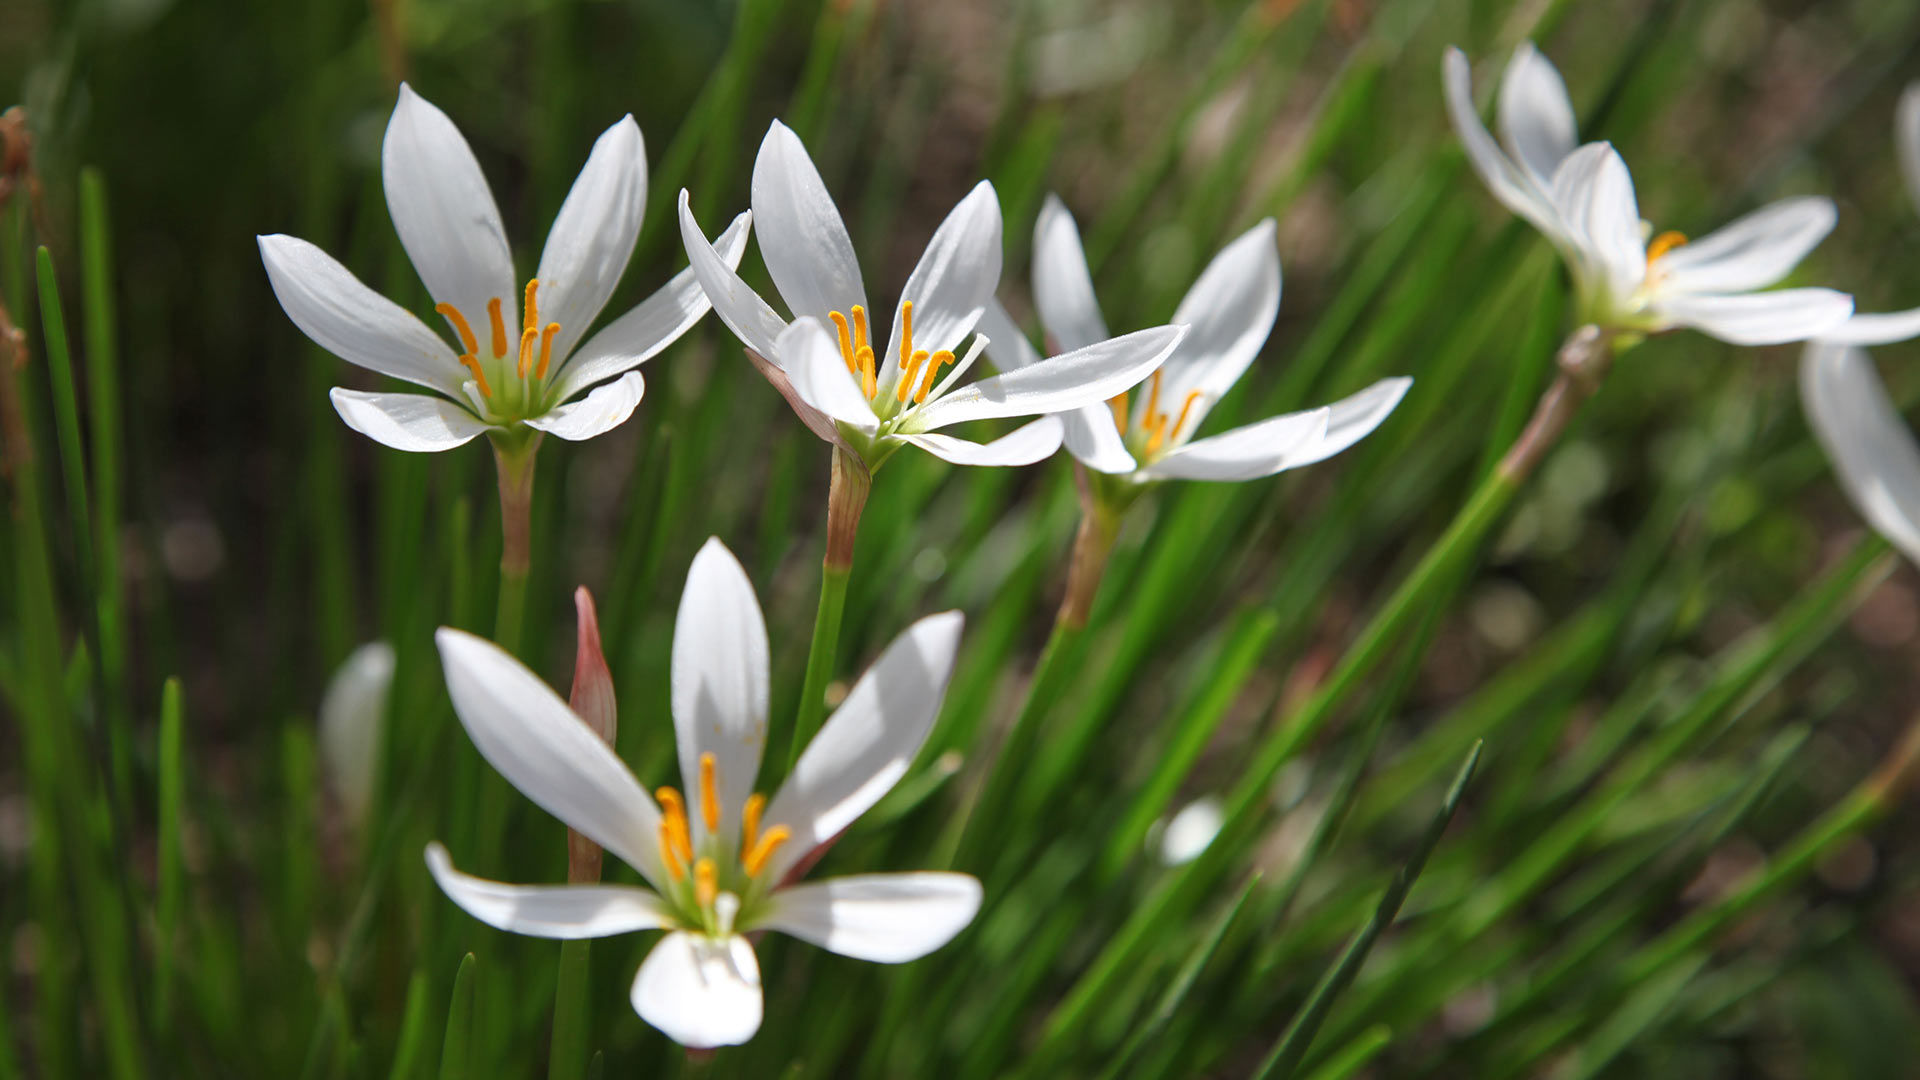 The rain lily is one of the many flowers that can grow well in many Arizona gardens.